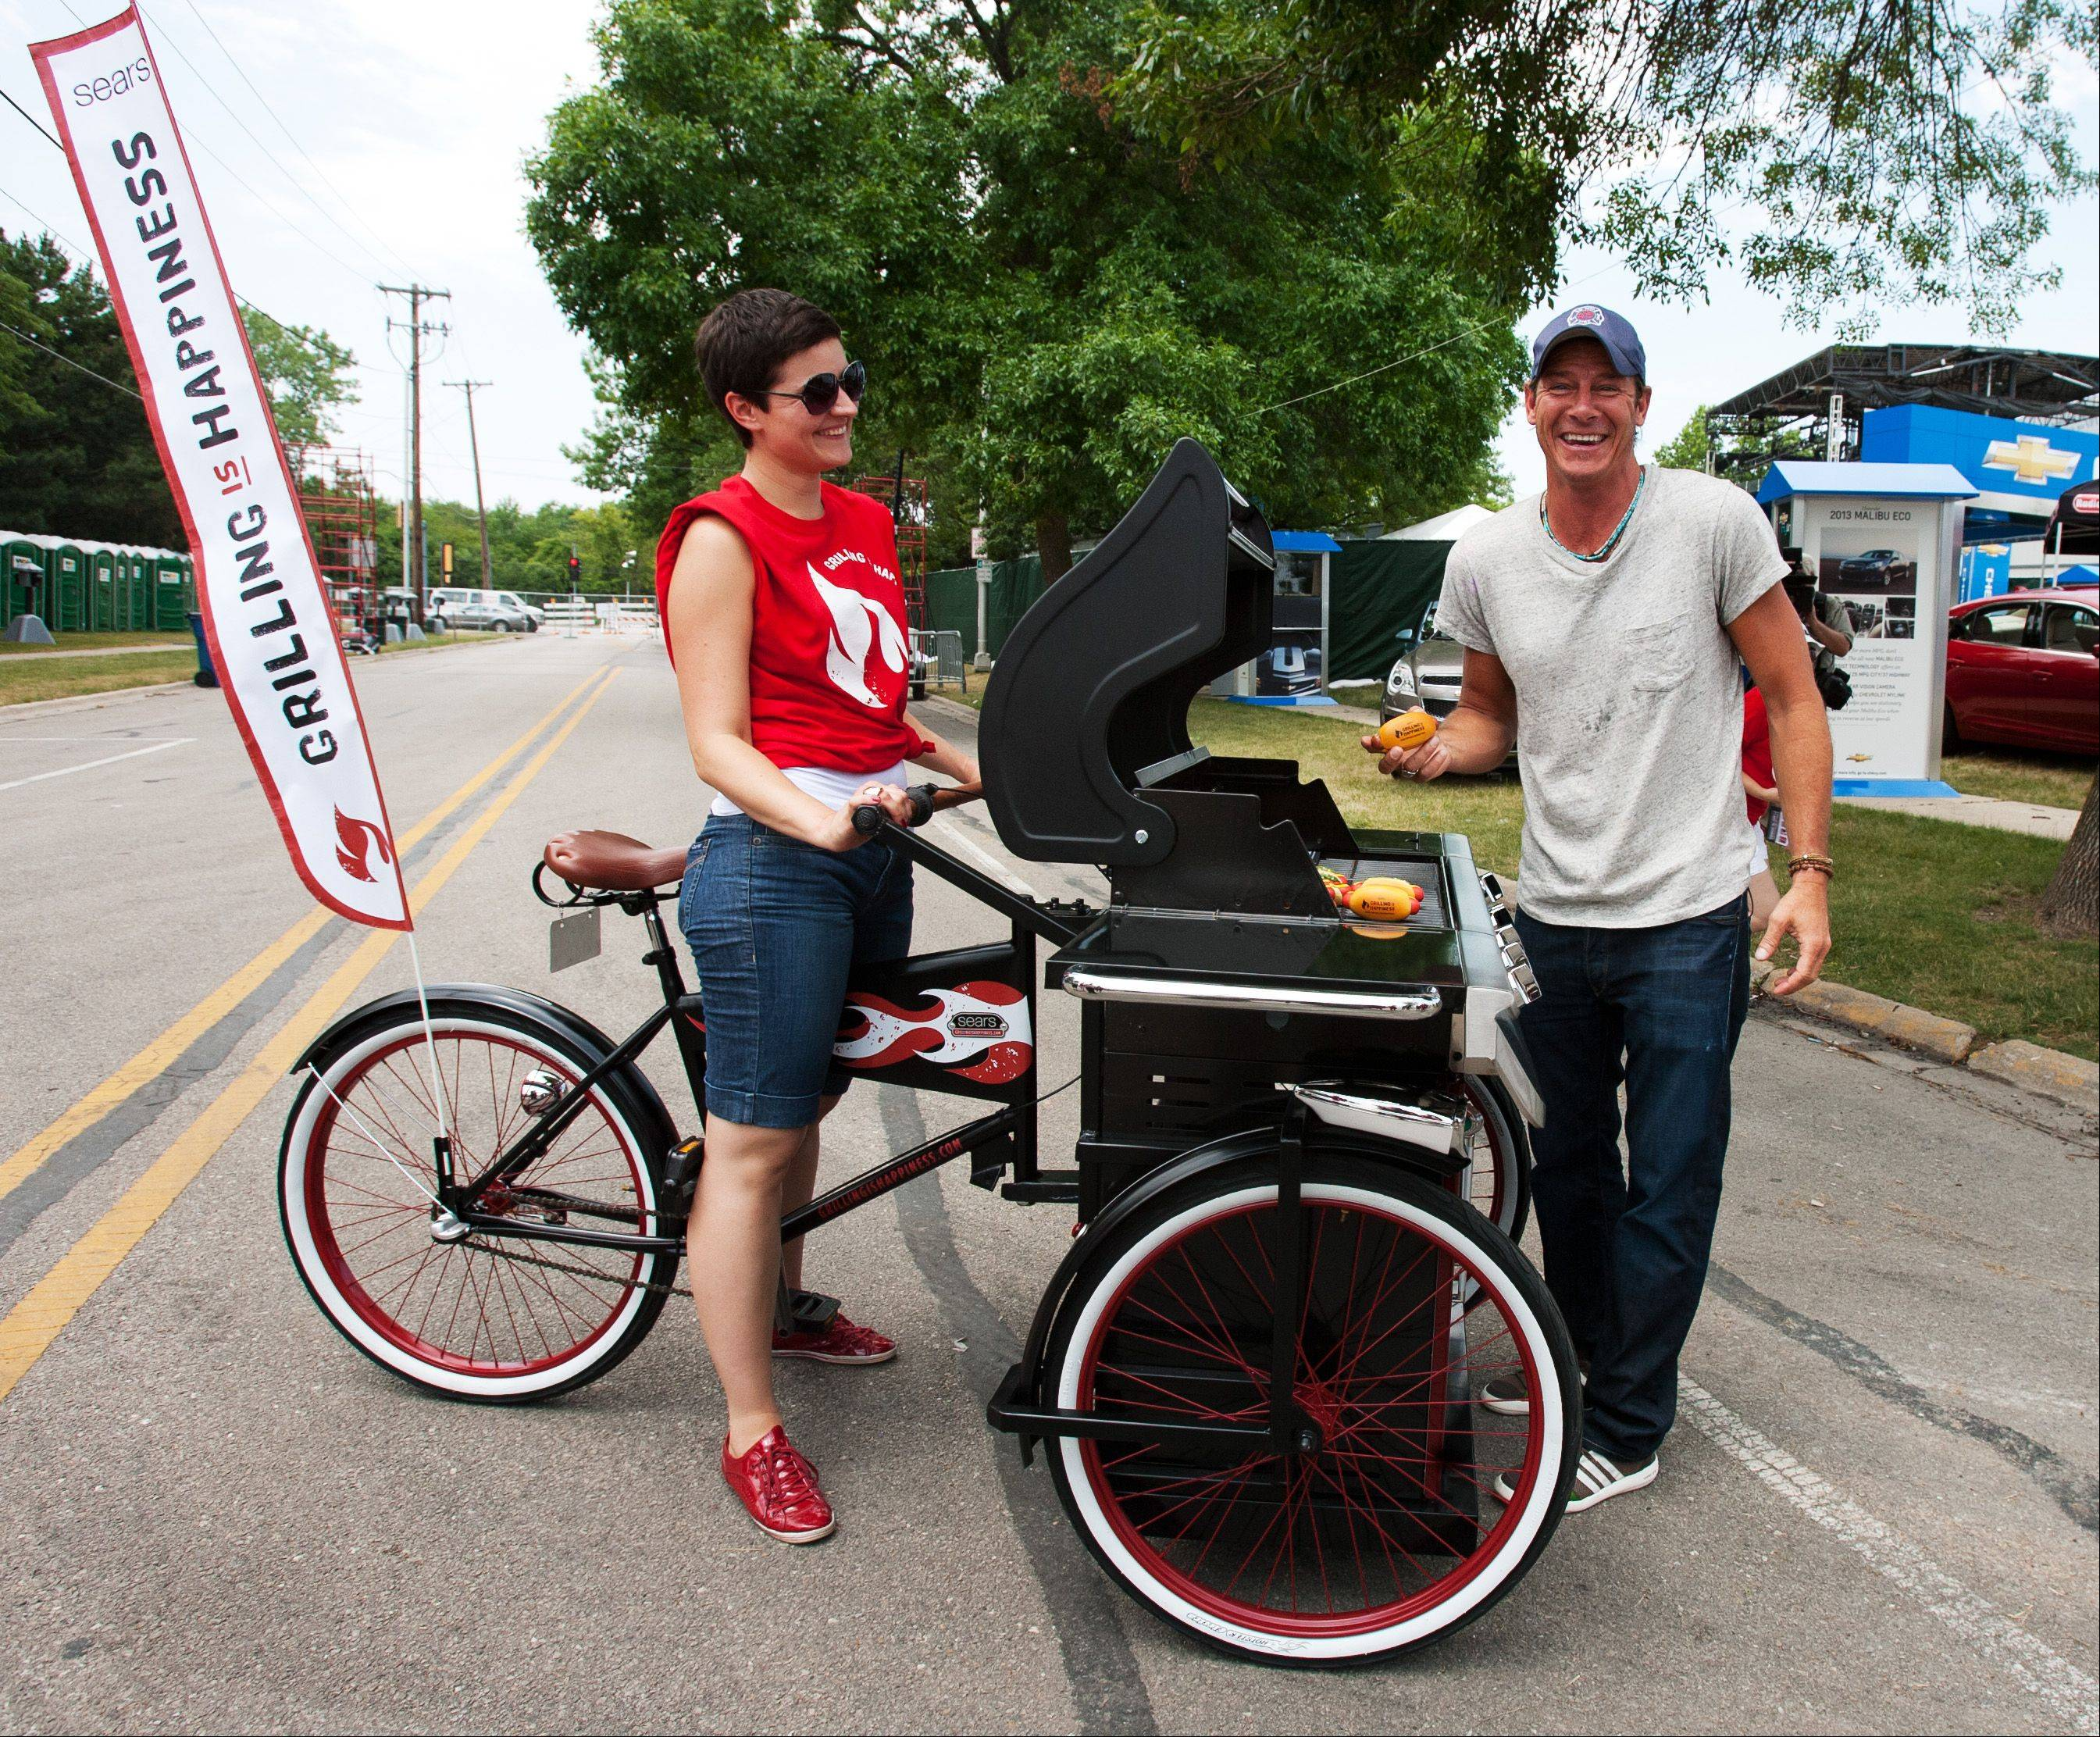 """Extreme Makeover: Home Edition"" star Ty Pennington offers grilling advice Saturday at Naperville's Ribfest. Reka Juhasz, left, steers the mobile grilling unit brought to the festival by the Sears Grilling is Happiness team."